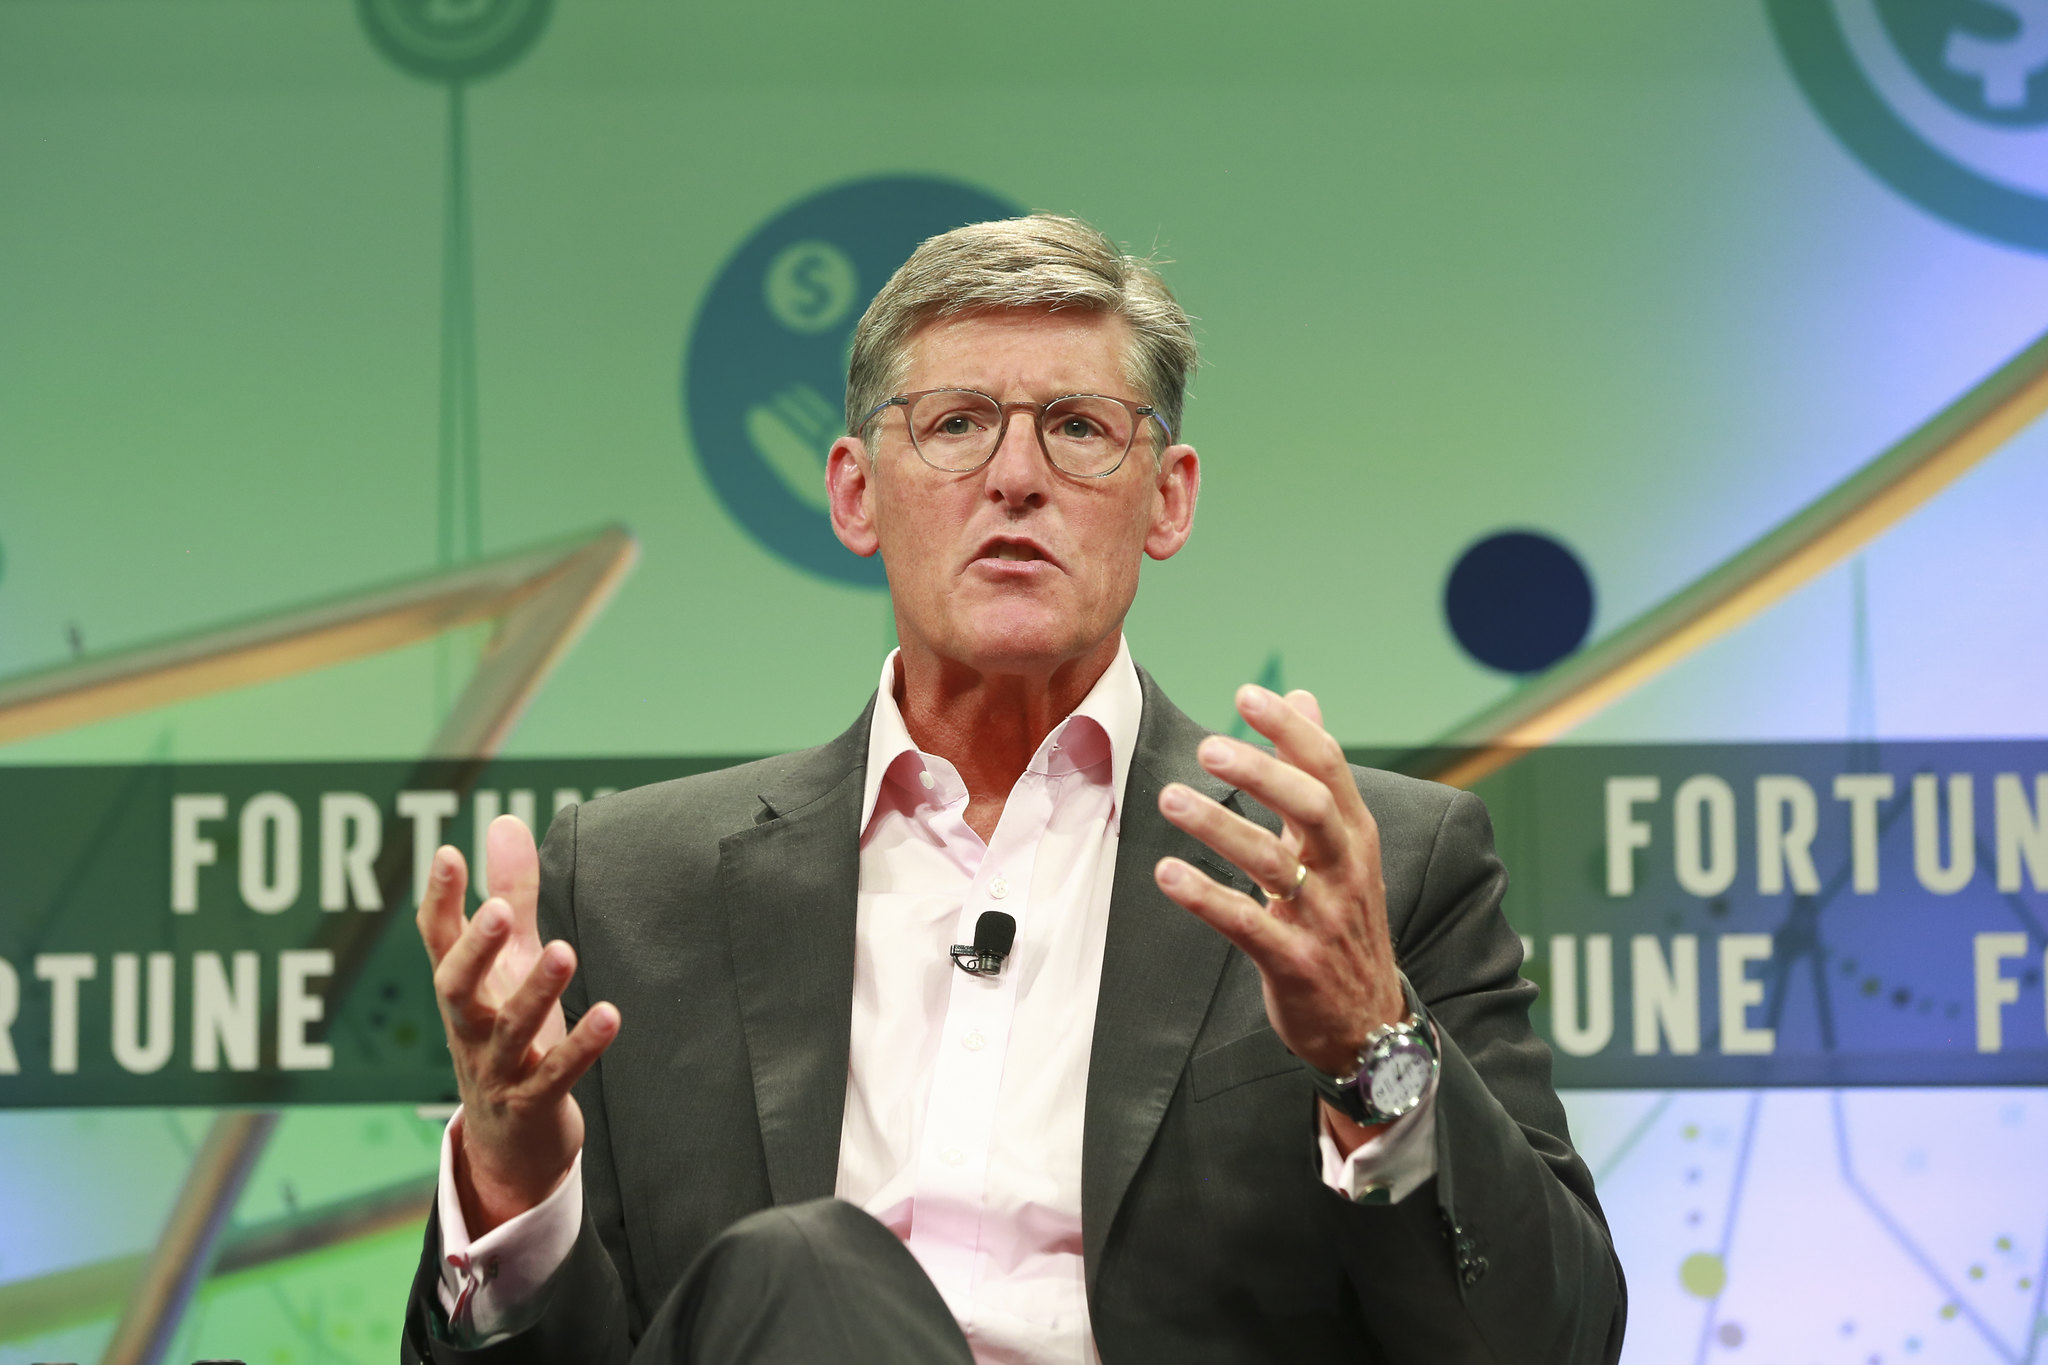 Citigroup CEO Michael Corbat speaking at the 2019 Fortune Brainstorm Finance conference in Montauk, N.Y.